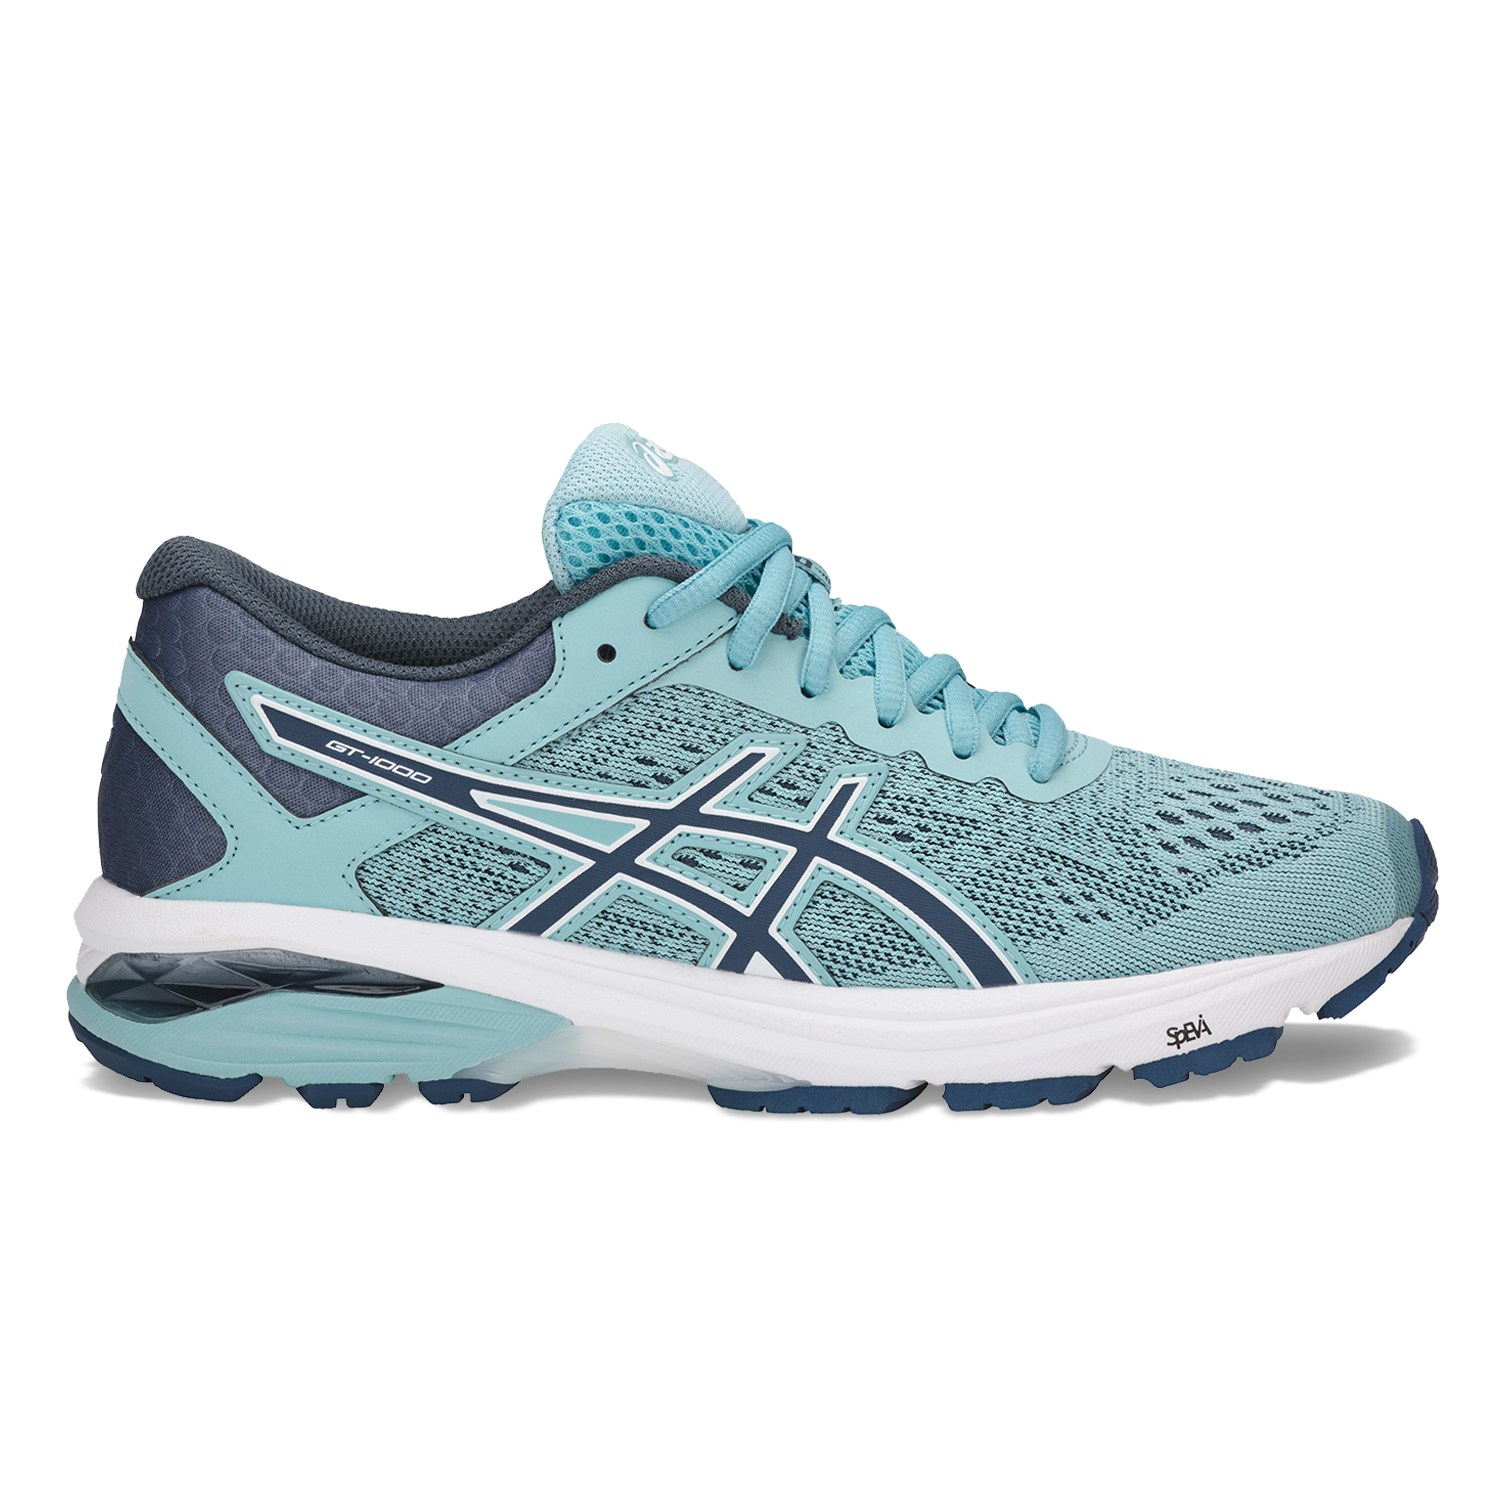 women running shoes asics gt-1000 6 womenu0027s running shoes MEDOJOC